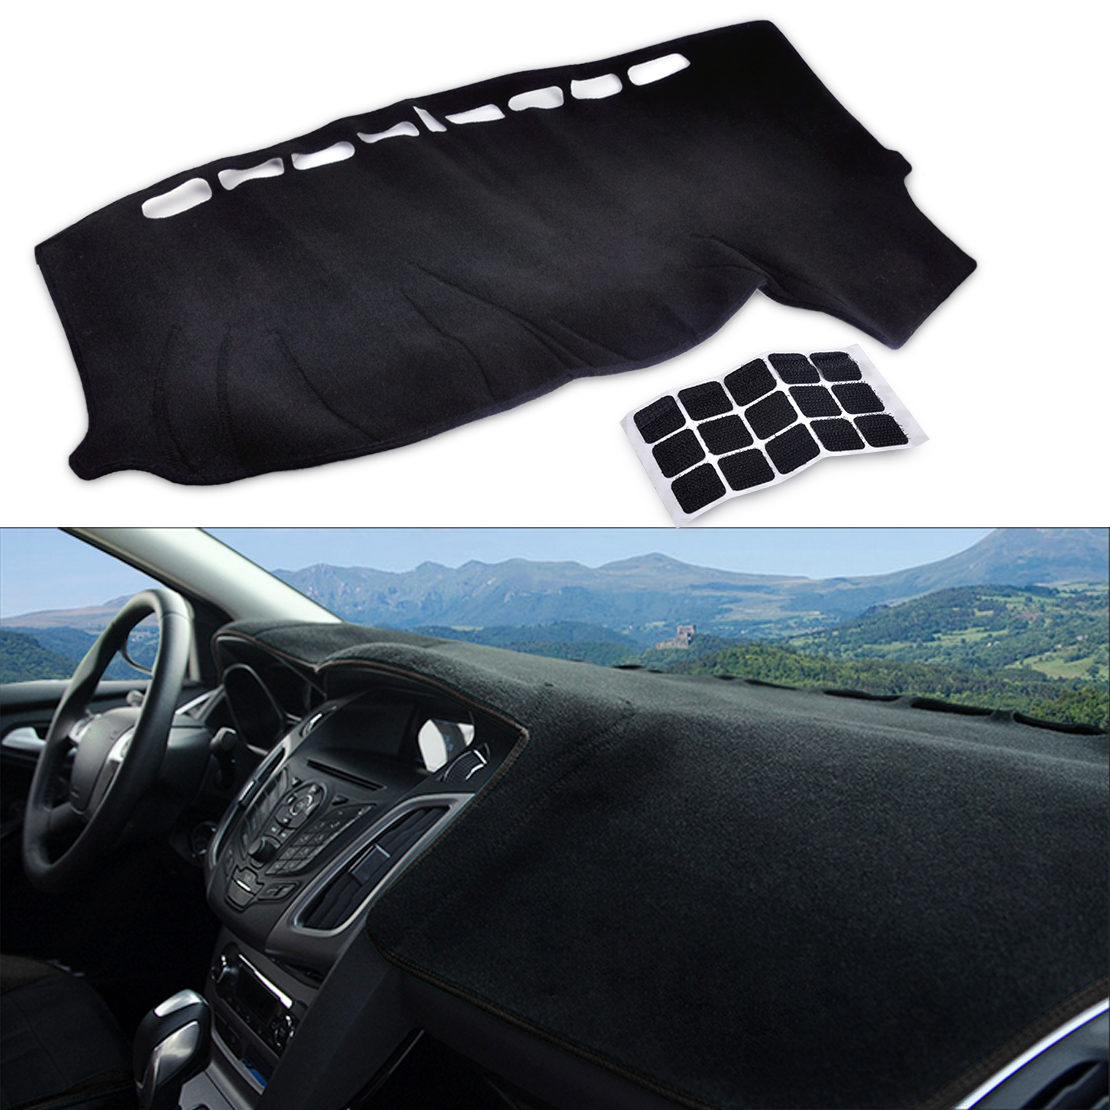 DWCX LHD Auto Inner Dashboard Carpet Dash Cover Pad DashMat Mat Sun Shade Protector for Ford Focus MK3 2012 2013 2014 2015 2016 dashboard cover